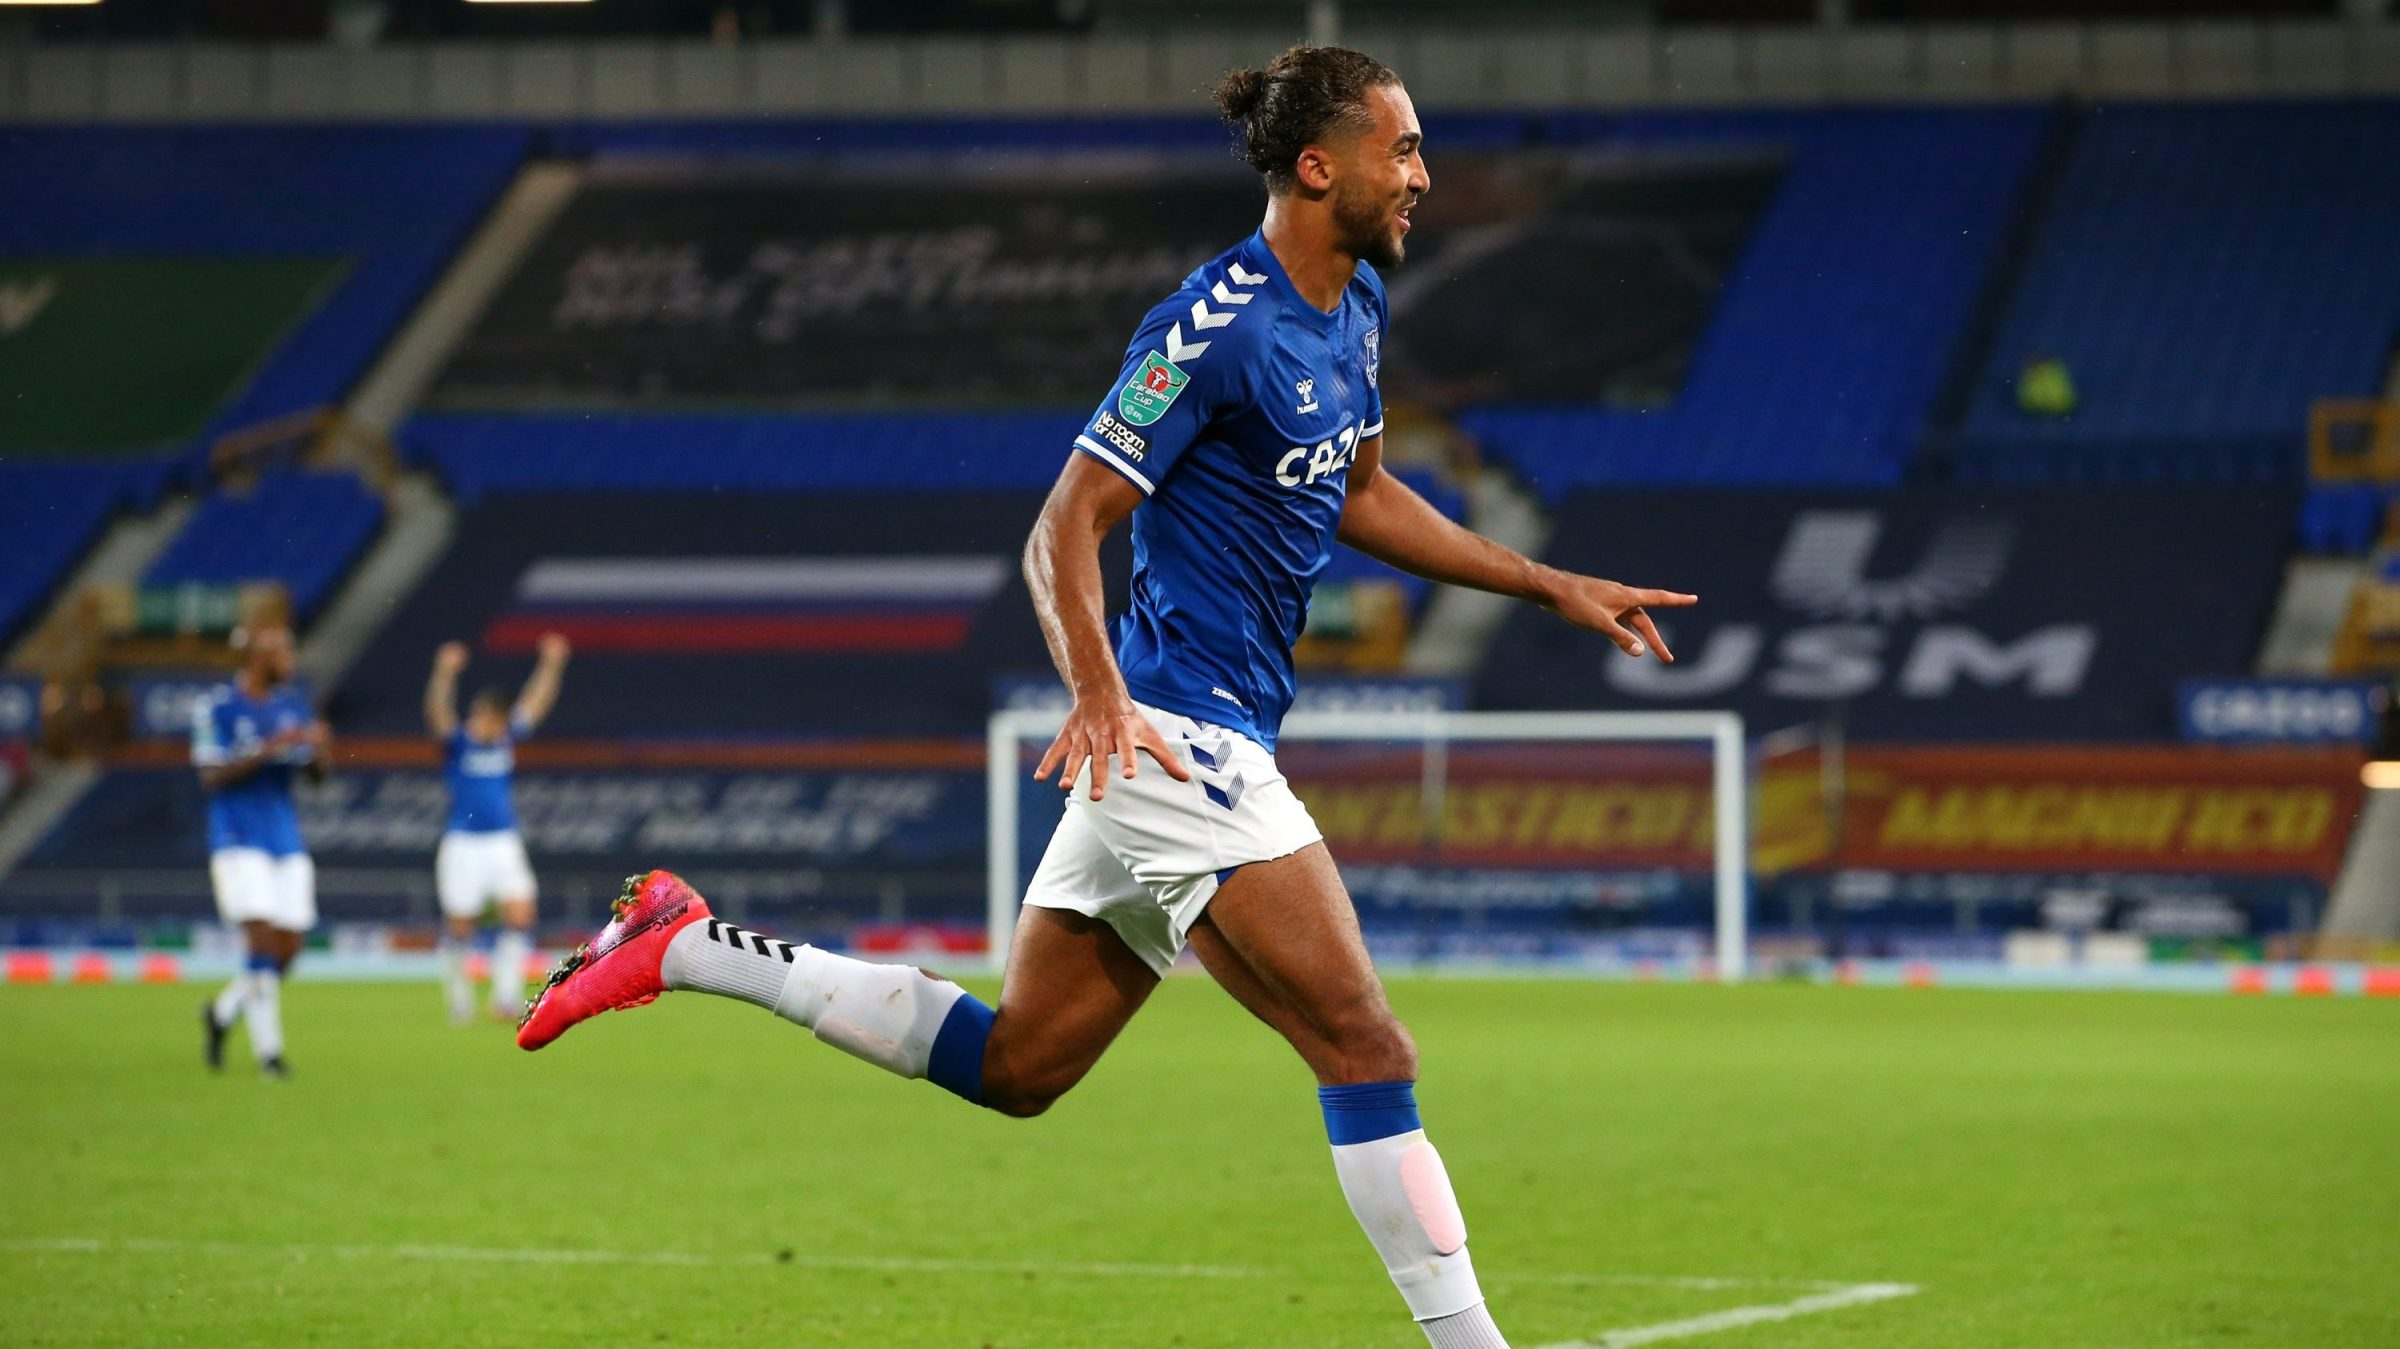 Dominic Calvert-Lewin of Everton celebrates after scoring his sides fourth goal during the Carabao Cup fourth round match between Everton and West Ham United at Goodison Park